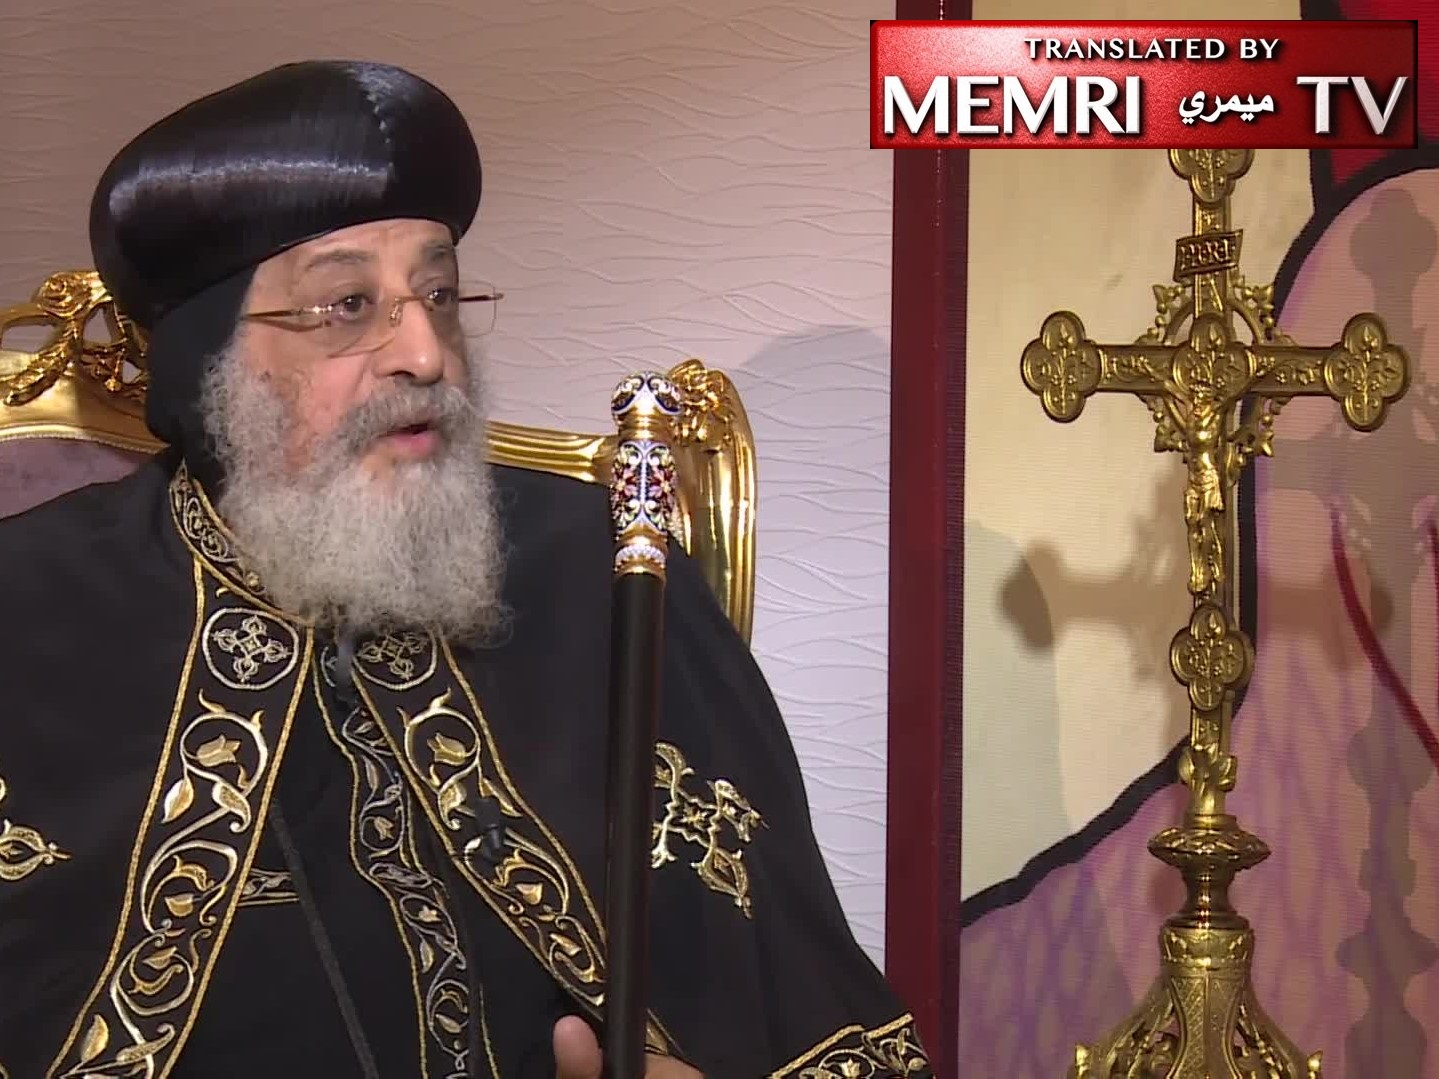 Egyptian Coptic Patriarch Pope Tawadros II of Alexandria: No Problem with Copts Visiting Jerusalem, Israel Is a Country Like Any Other